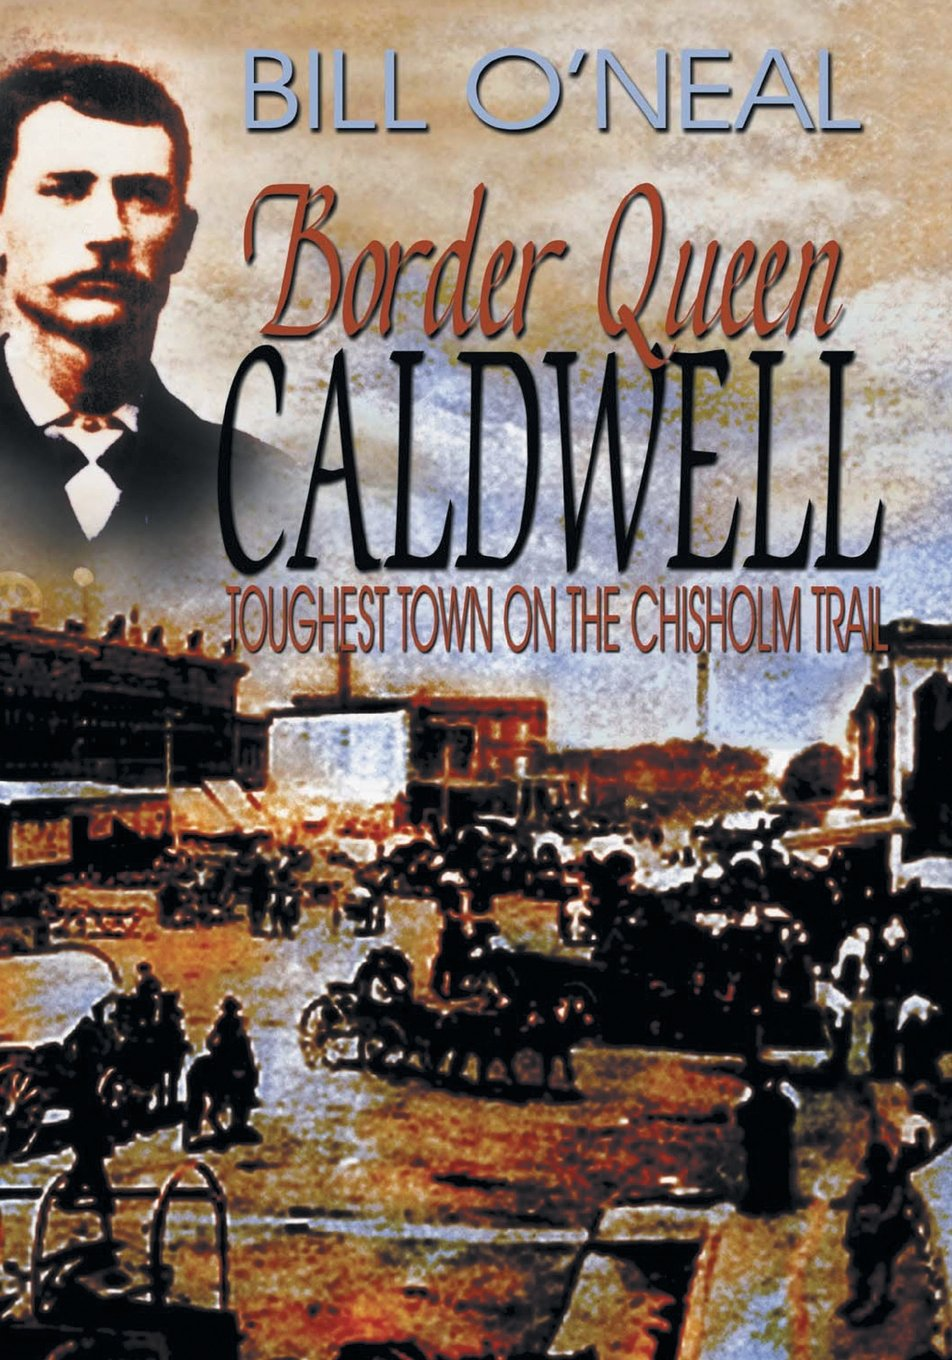 Download Border Queen Caldwell: Toughest Town on the Chisholm Trail ebook